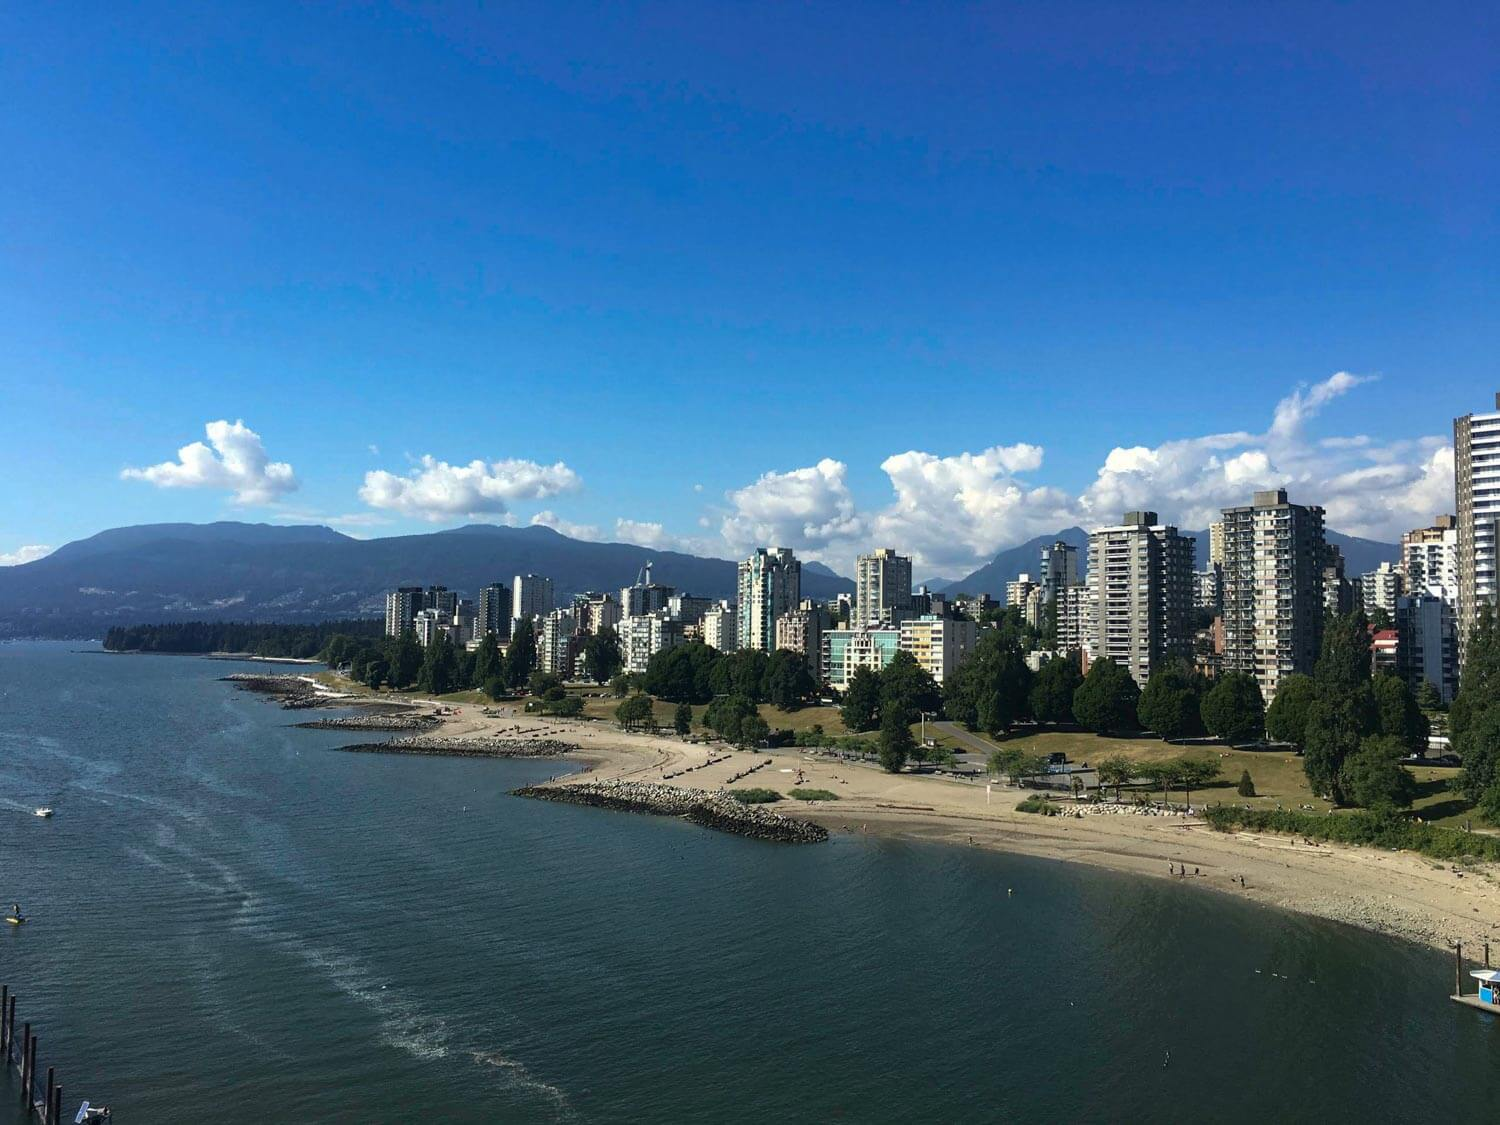 Vancouver West End and Sunset Beach viewed from Burrard Bridge